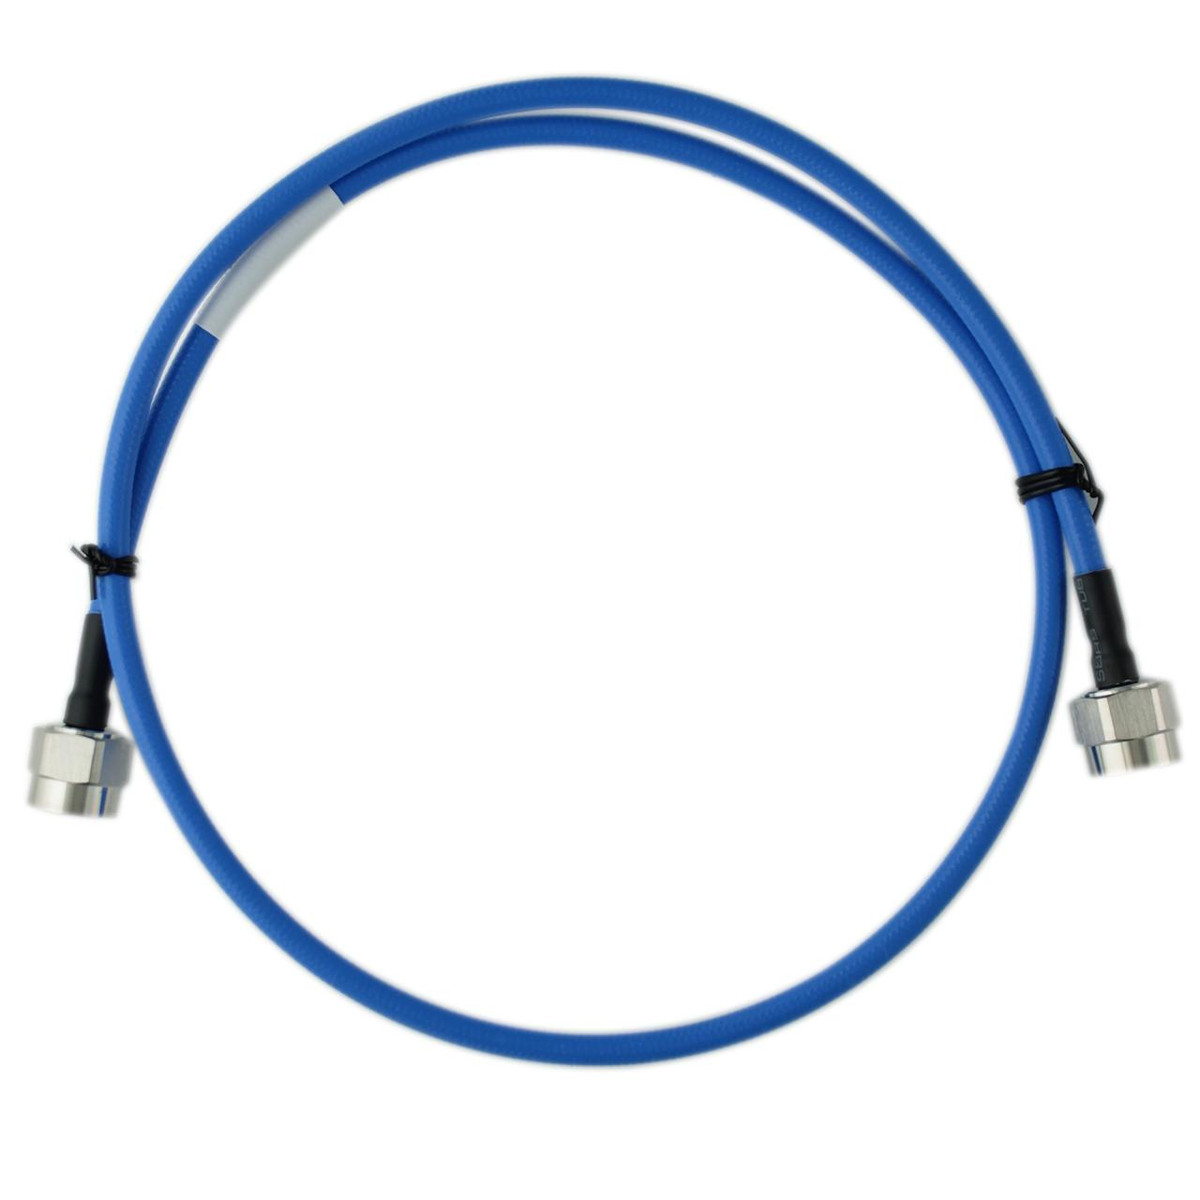 Bolton Tech Bolton Technical N-Male to N-Male SPO-250 Low Pim Ultra Low-Loss Jumper Cable or 1 m Cable